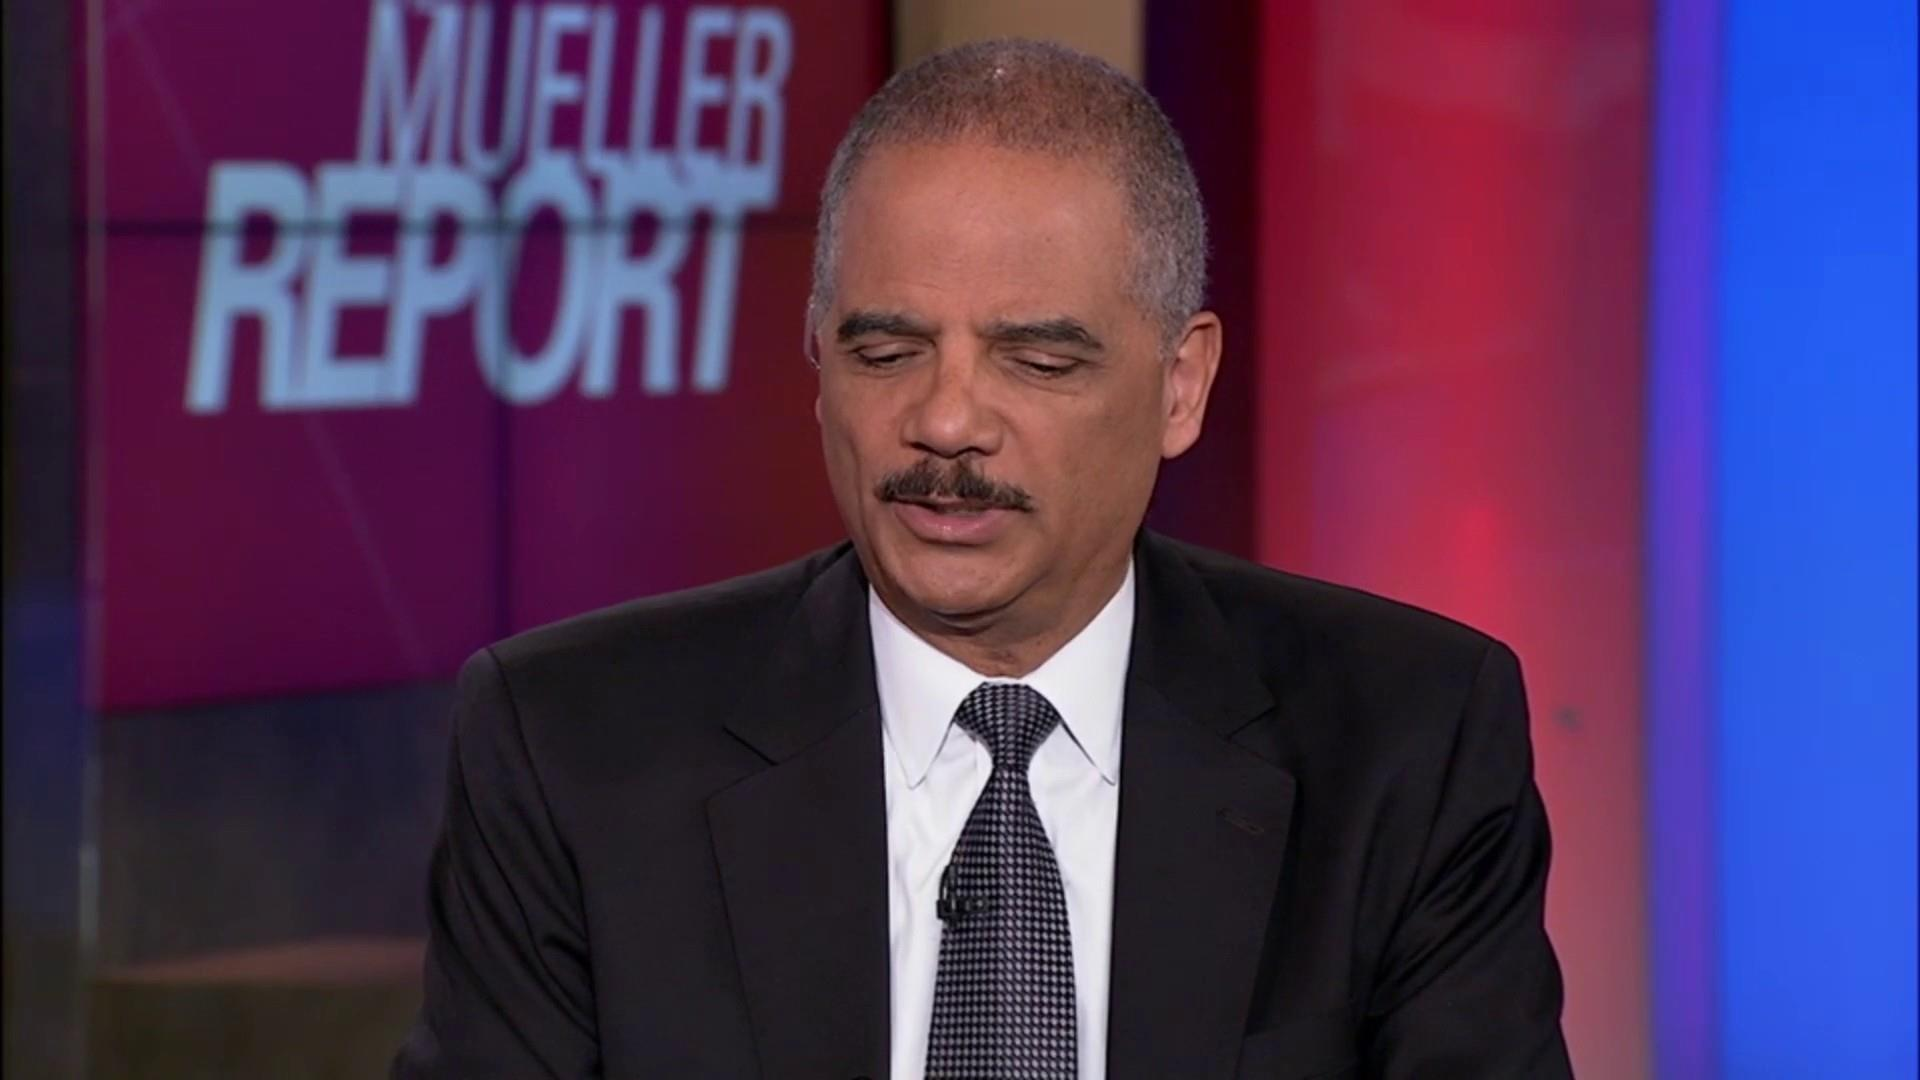 MSNBC anchor presses Holder on Obama admin. deportations